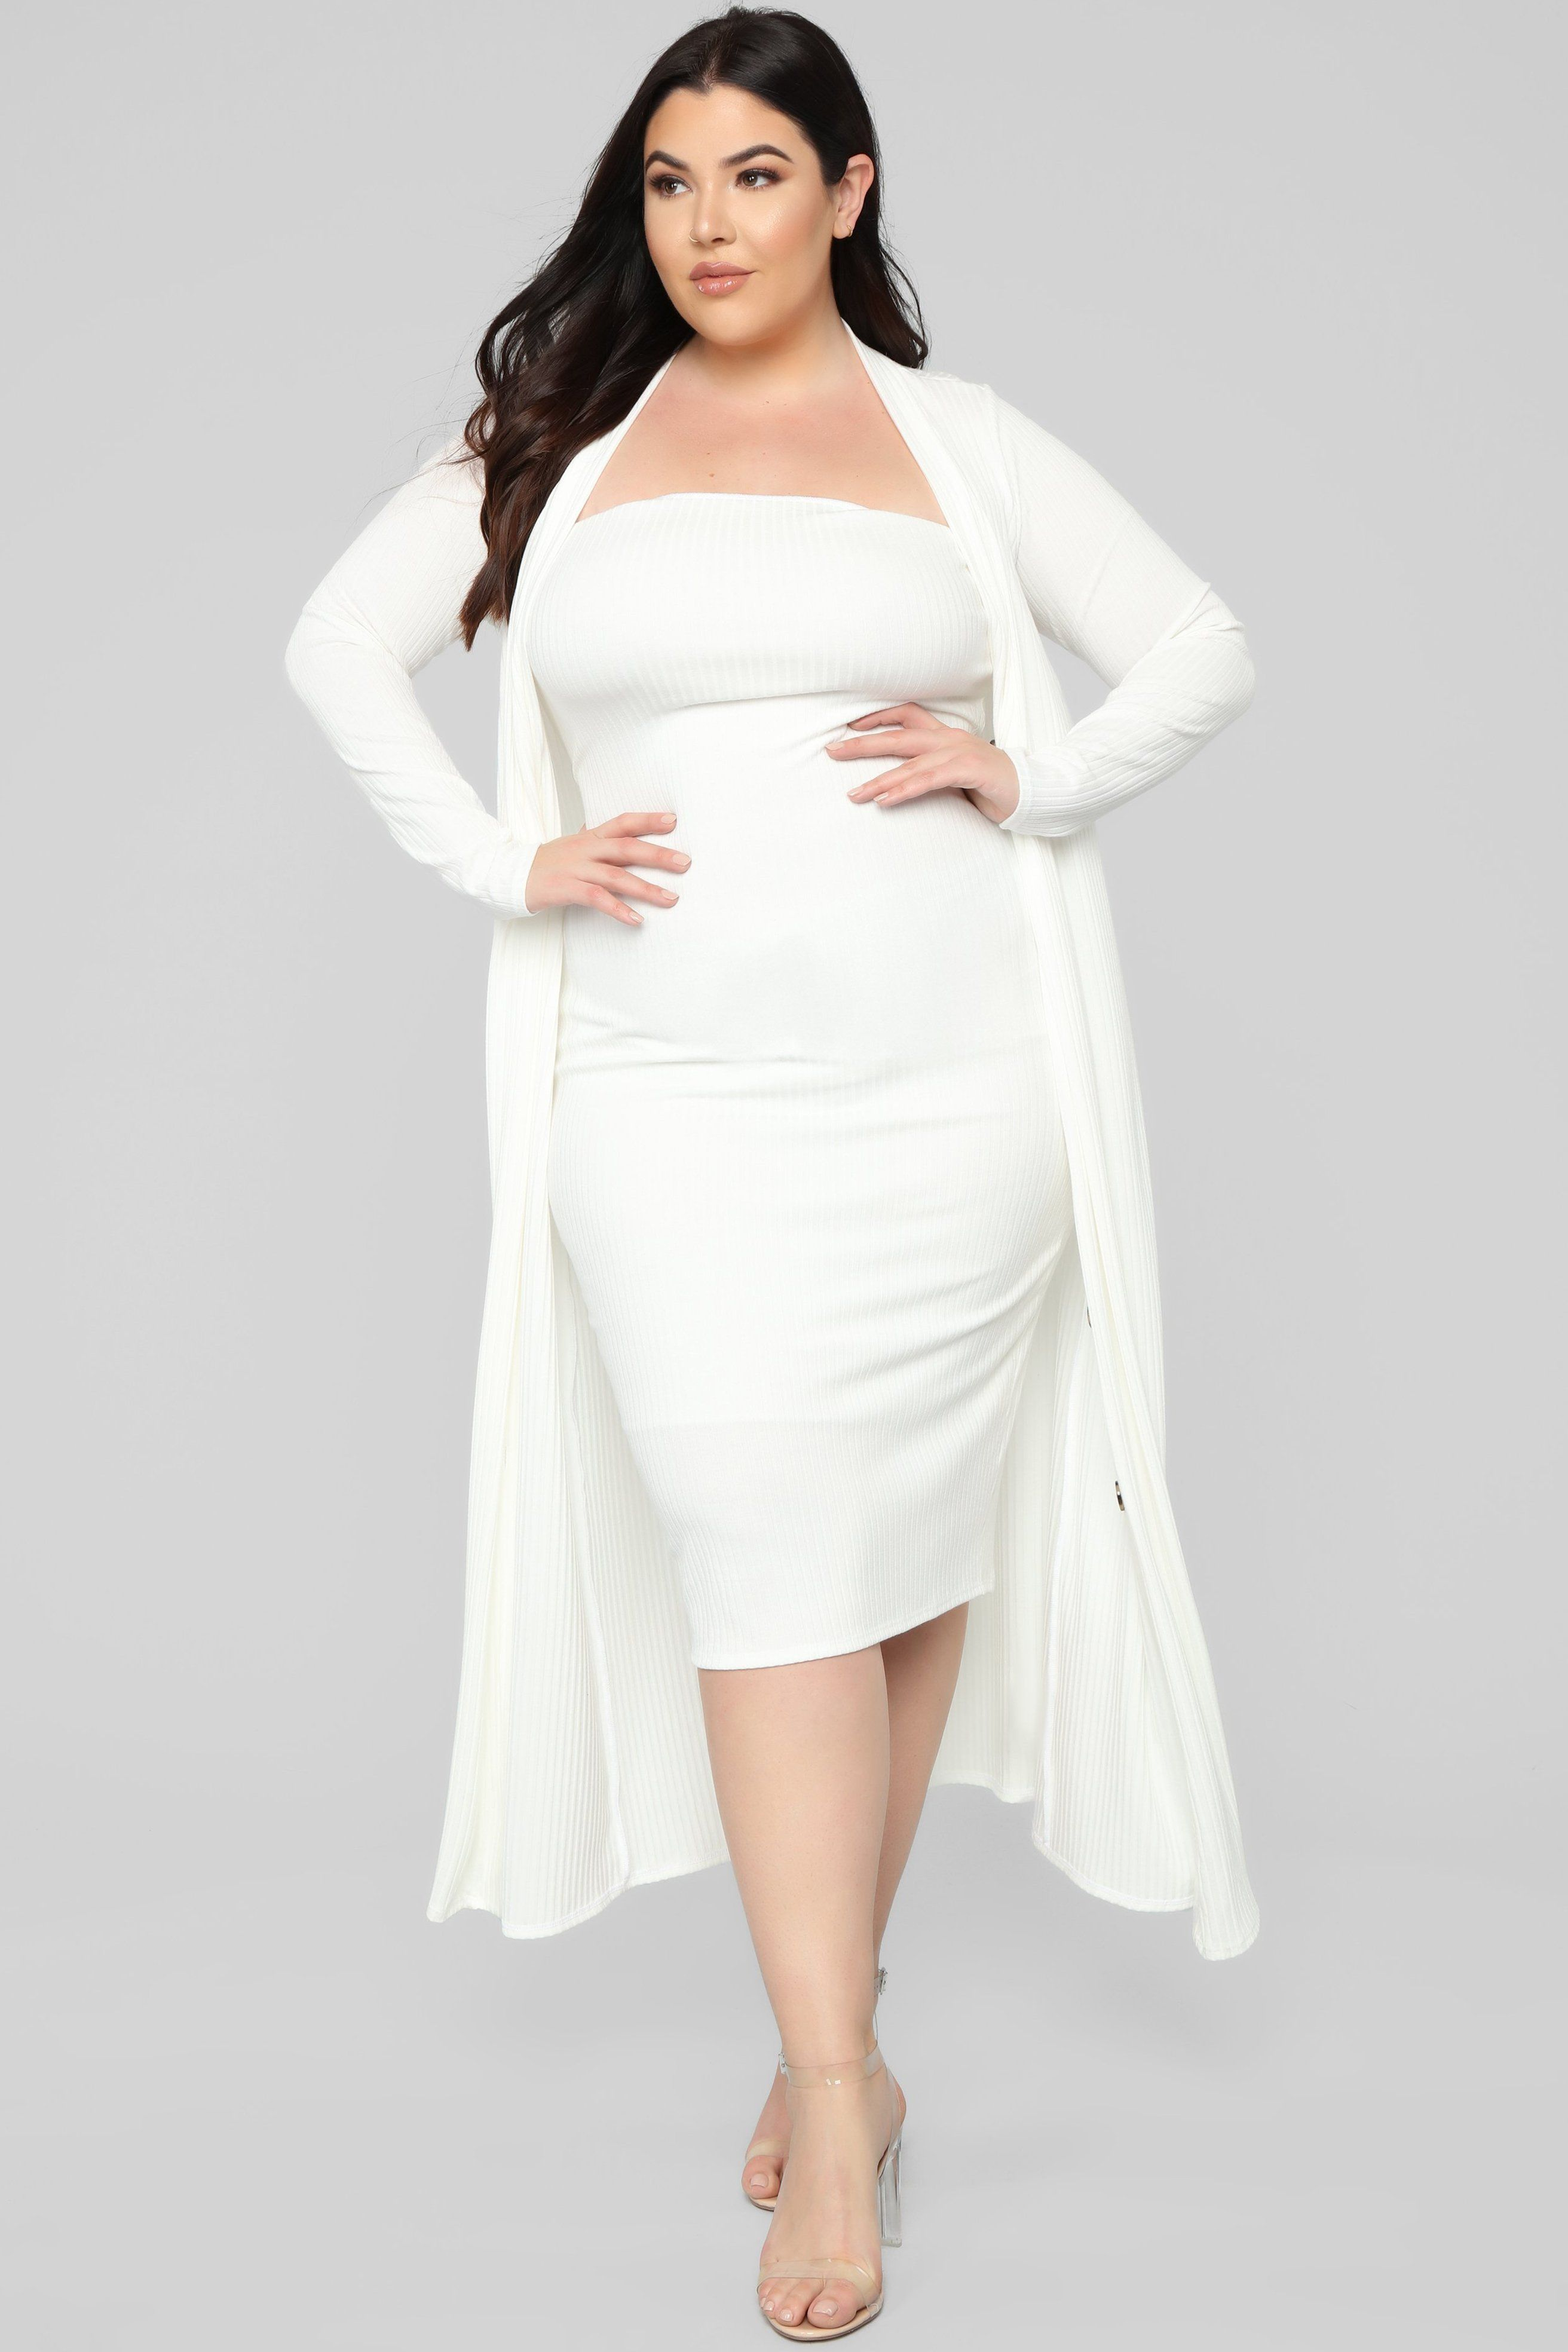 Never Looking Back 2 Piece Dress White In 2021 White Plus Size Dresses Beautiful White Dresses Plus Size Lace Dress [ 3936 x 2624 Pixel ]